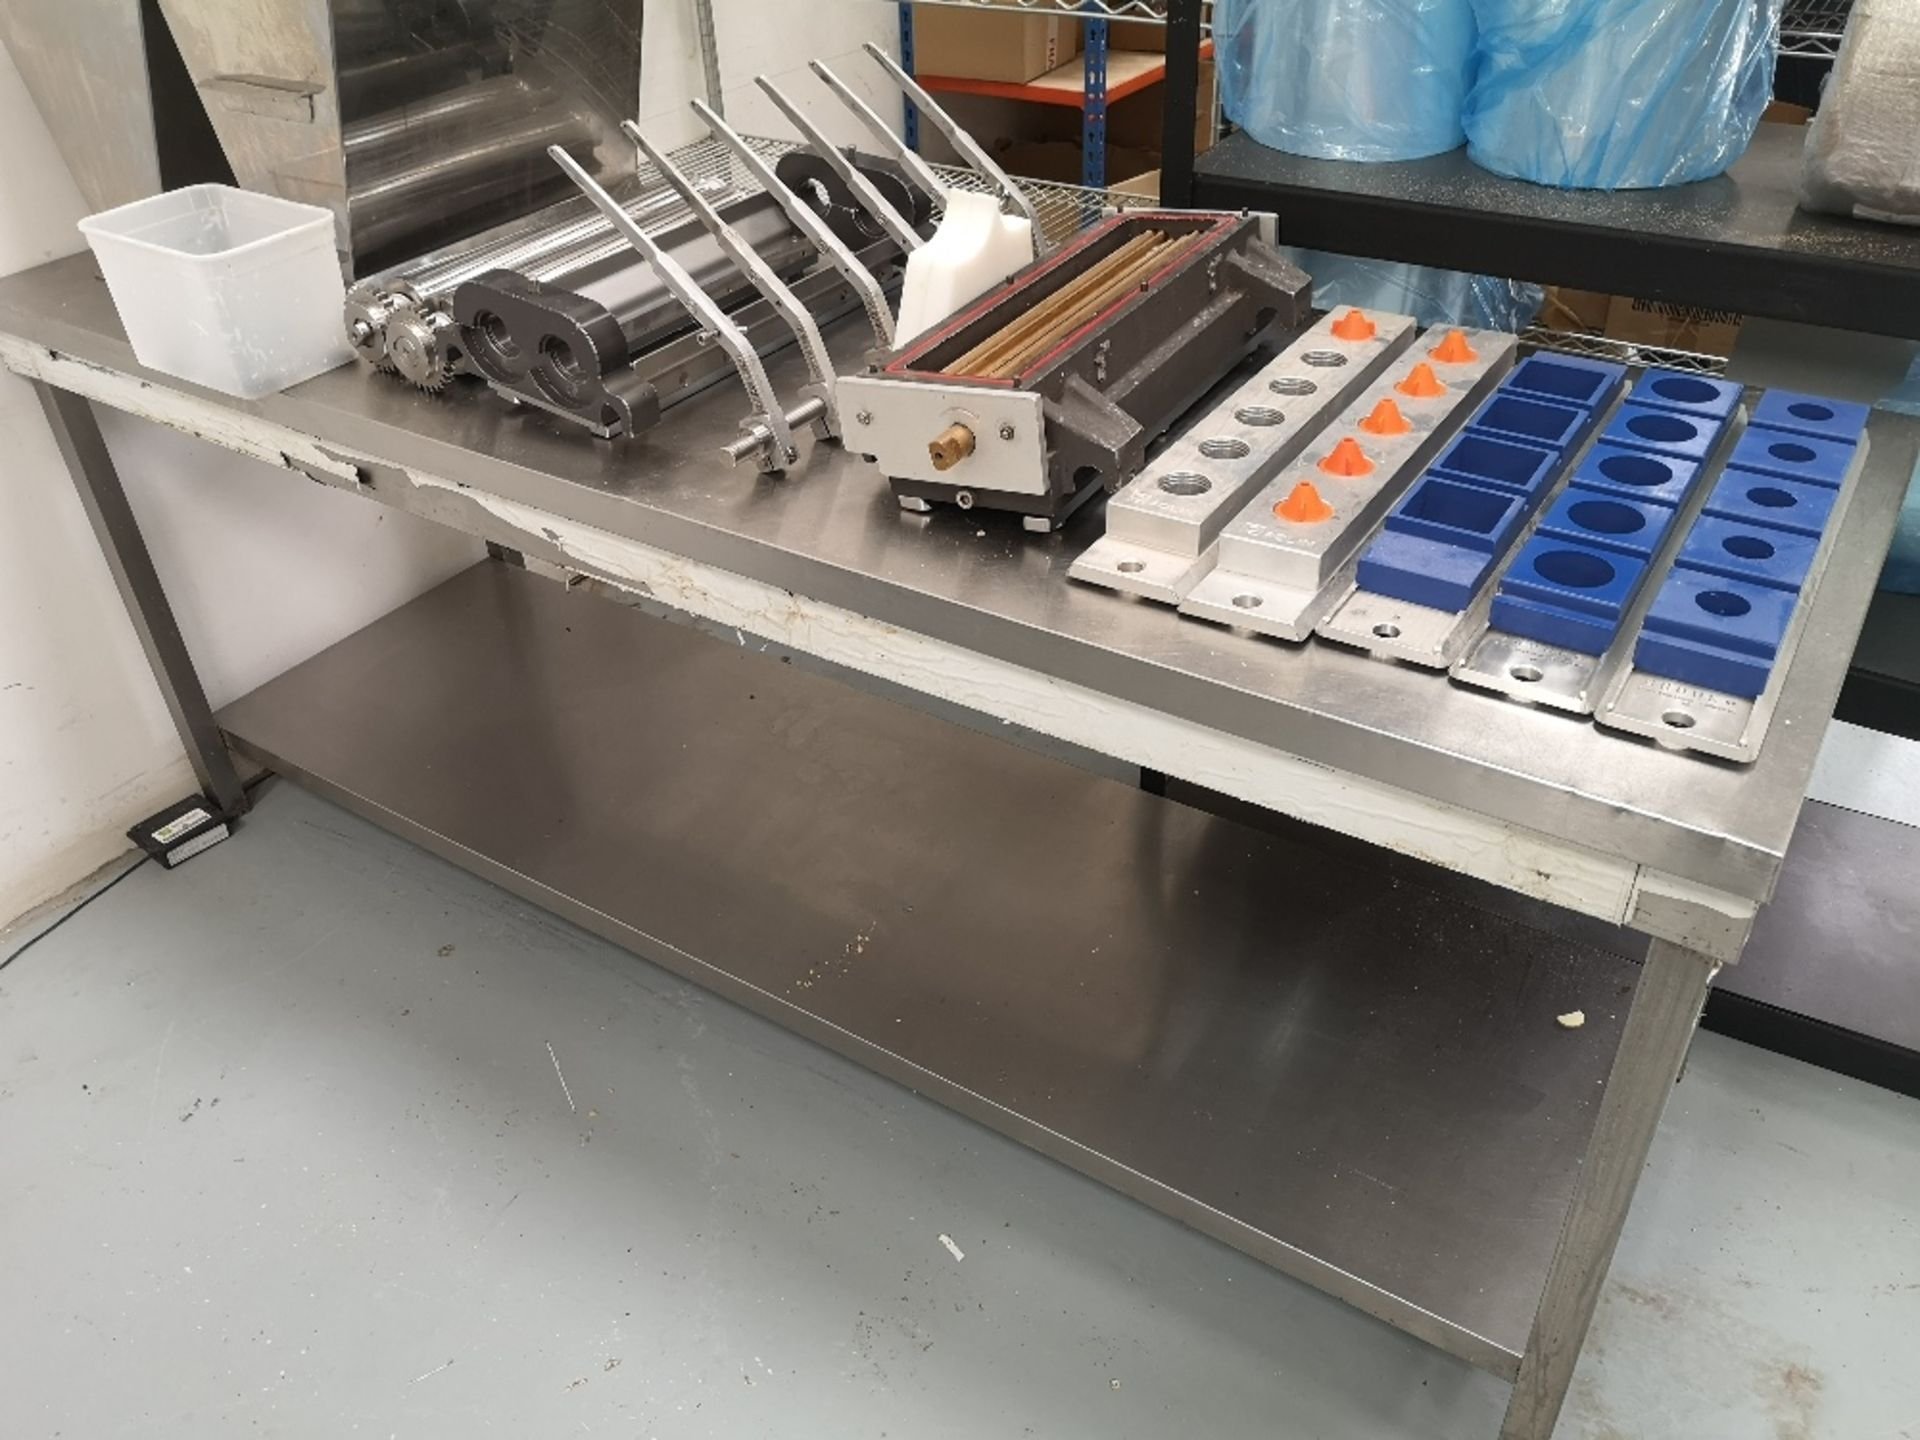 Stainless Steel Two Tier Preparation Table - Image 3 of 3